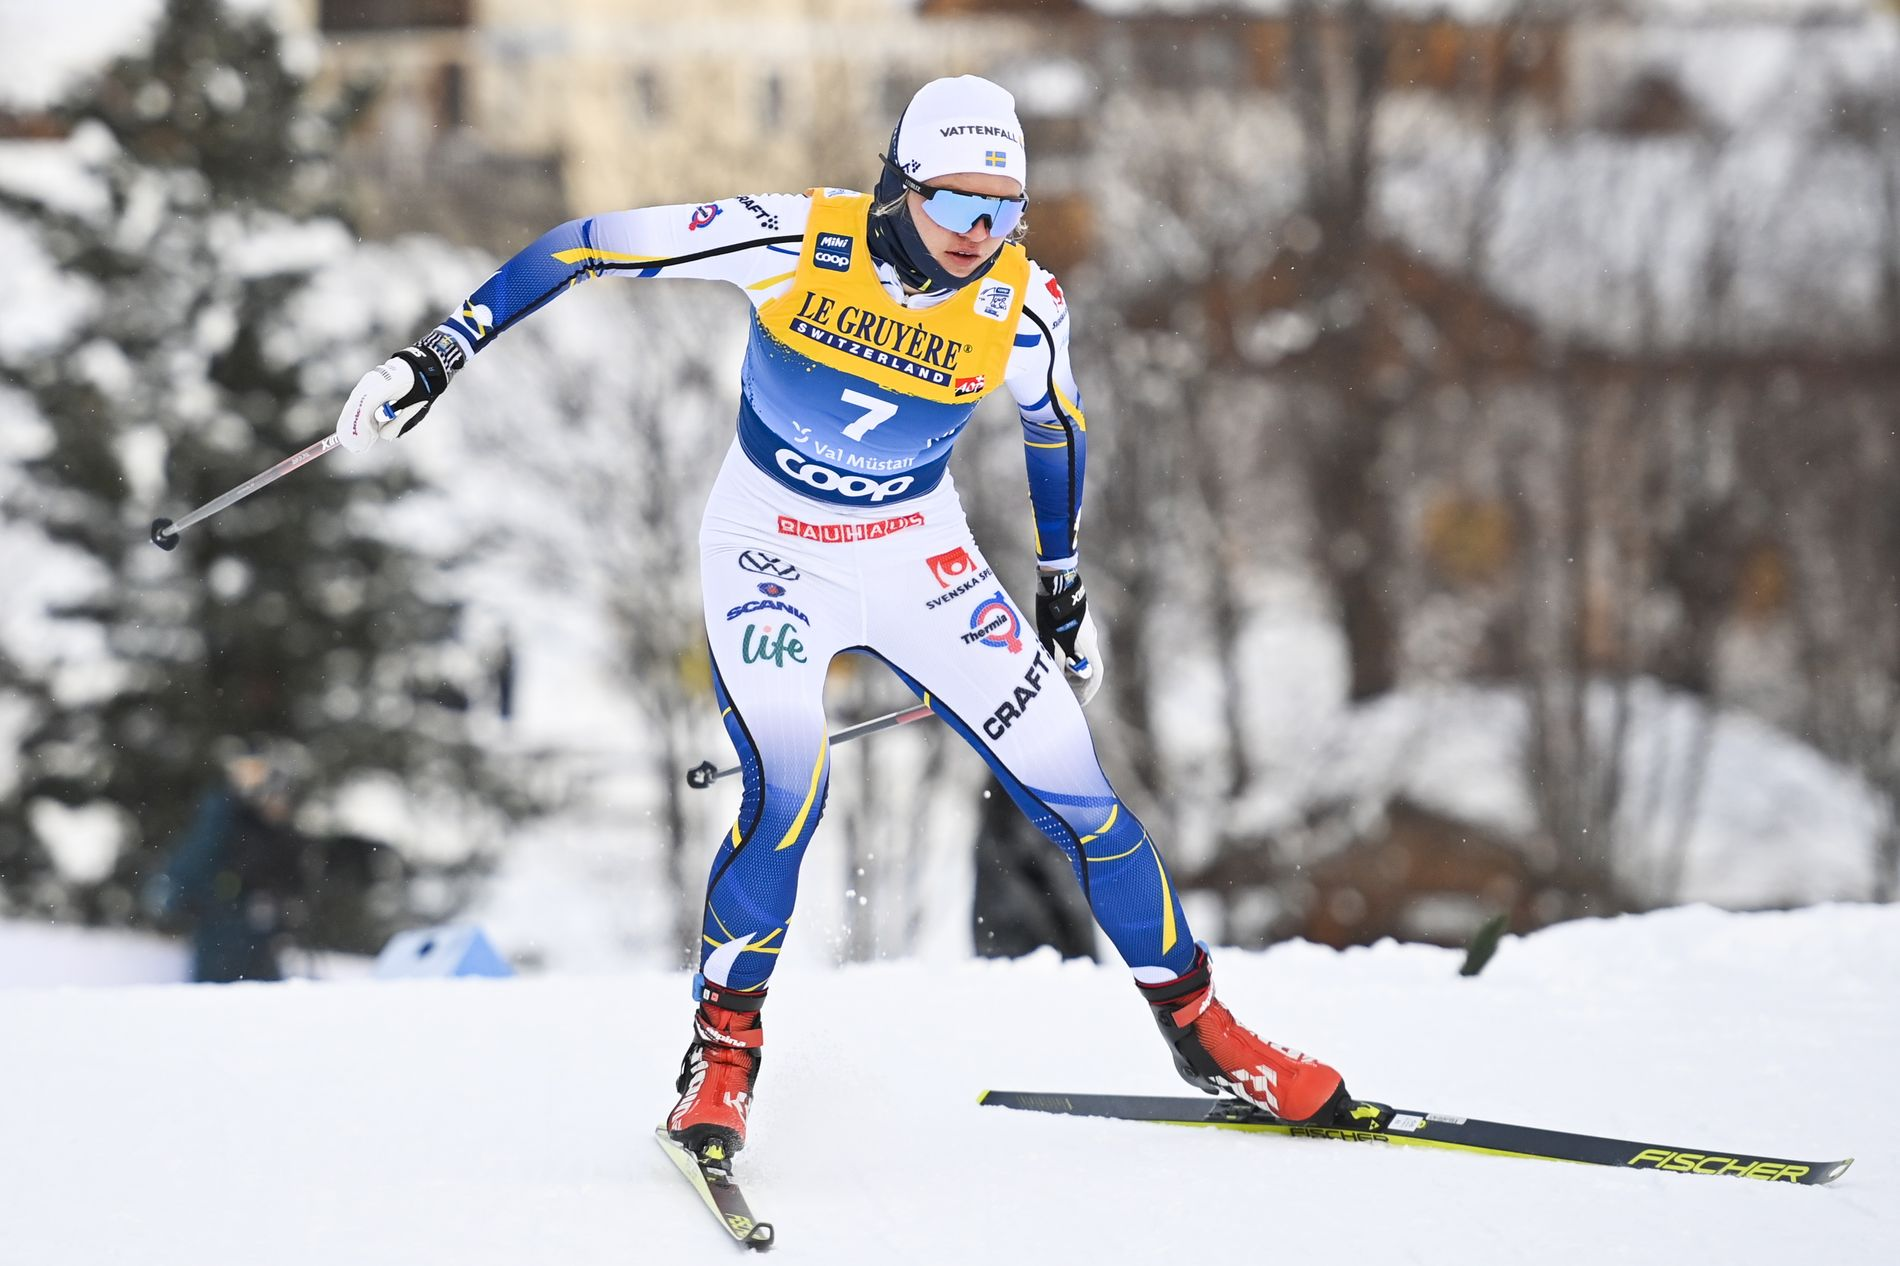 Linn Svahn Had To Give Extra Gas Won The Sprint Vg Time24 News